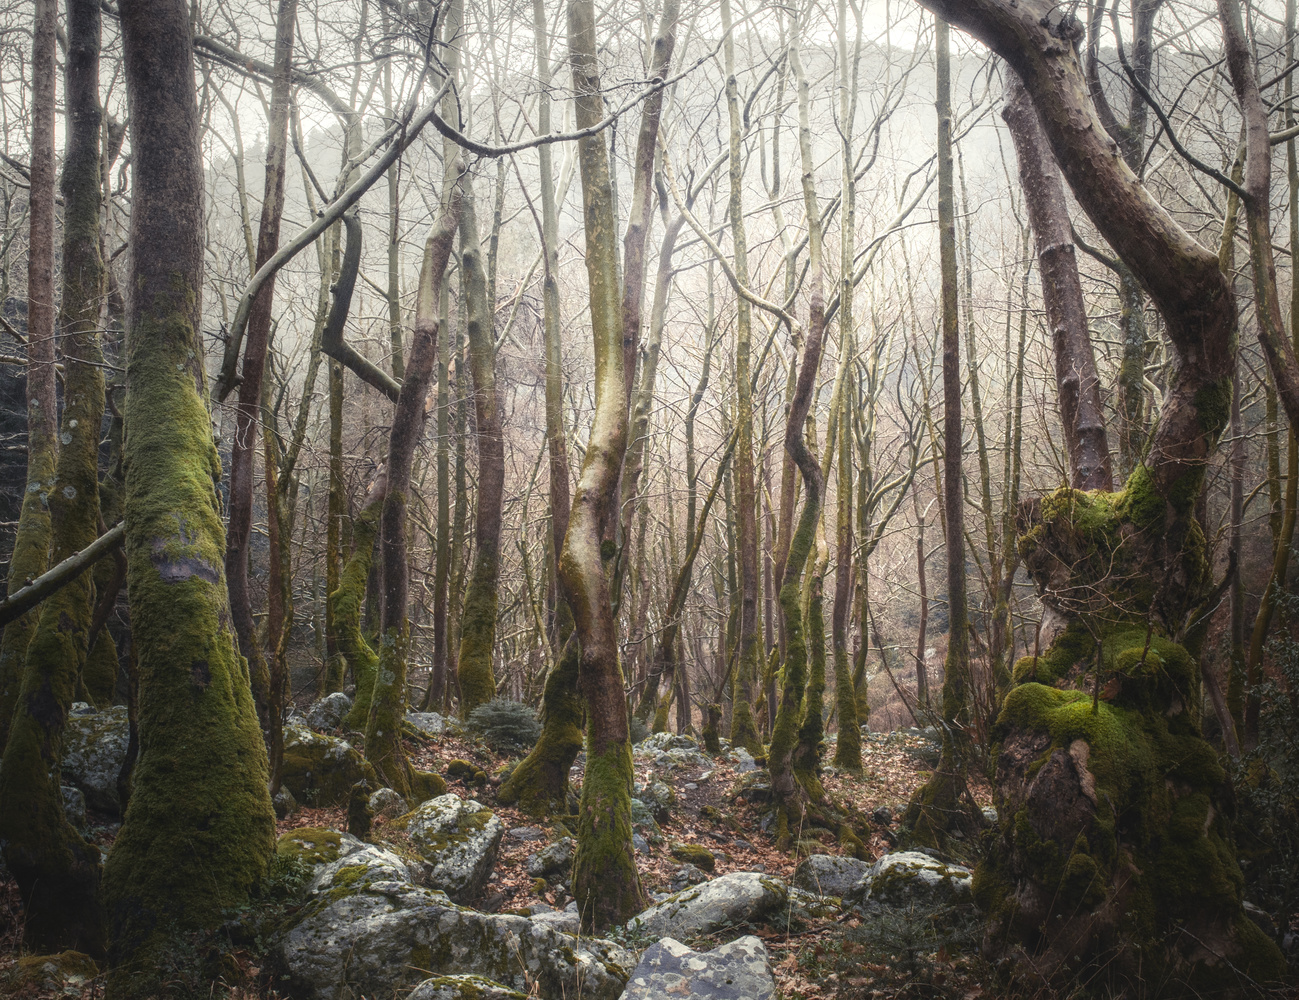 naked forest by stathis floros